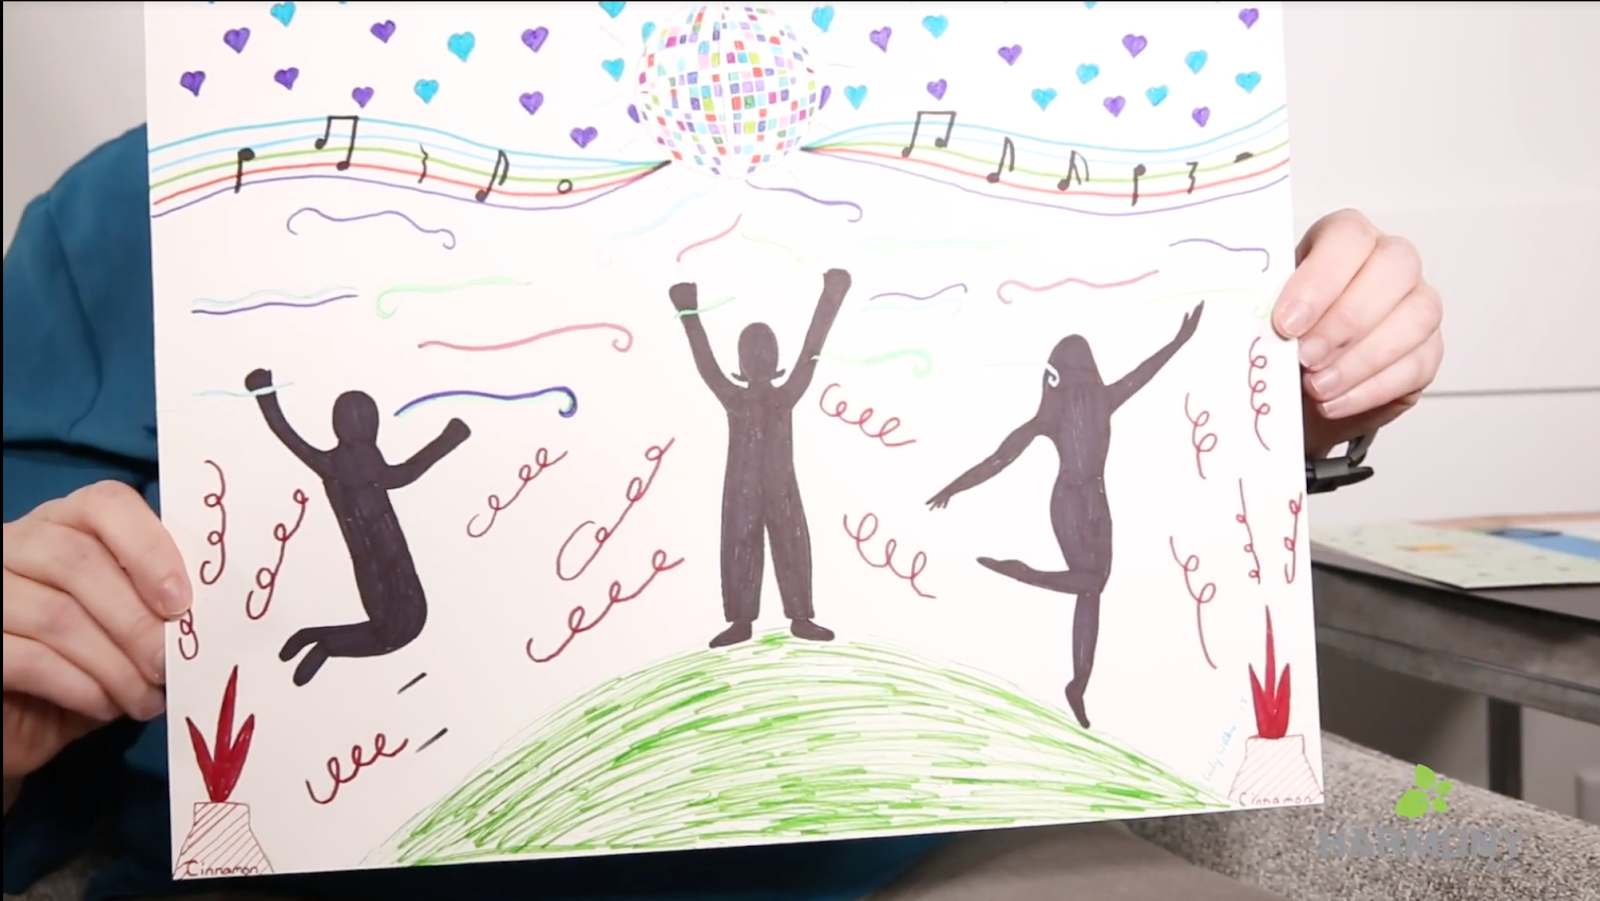 Emily's drawing representing her enjoying herself again after depression